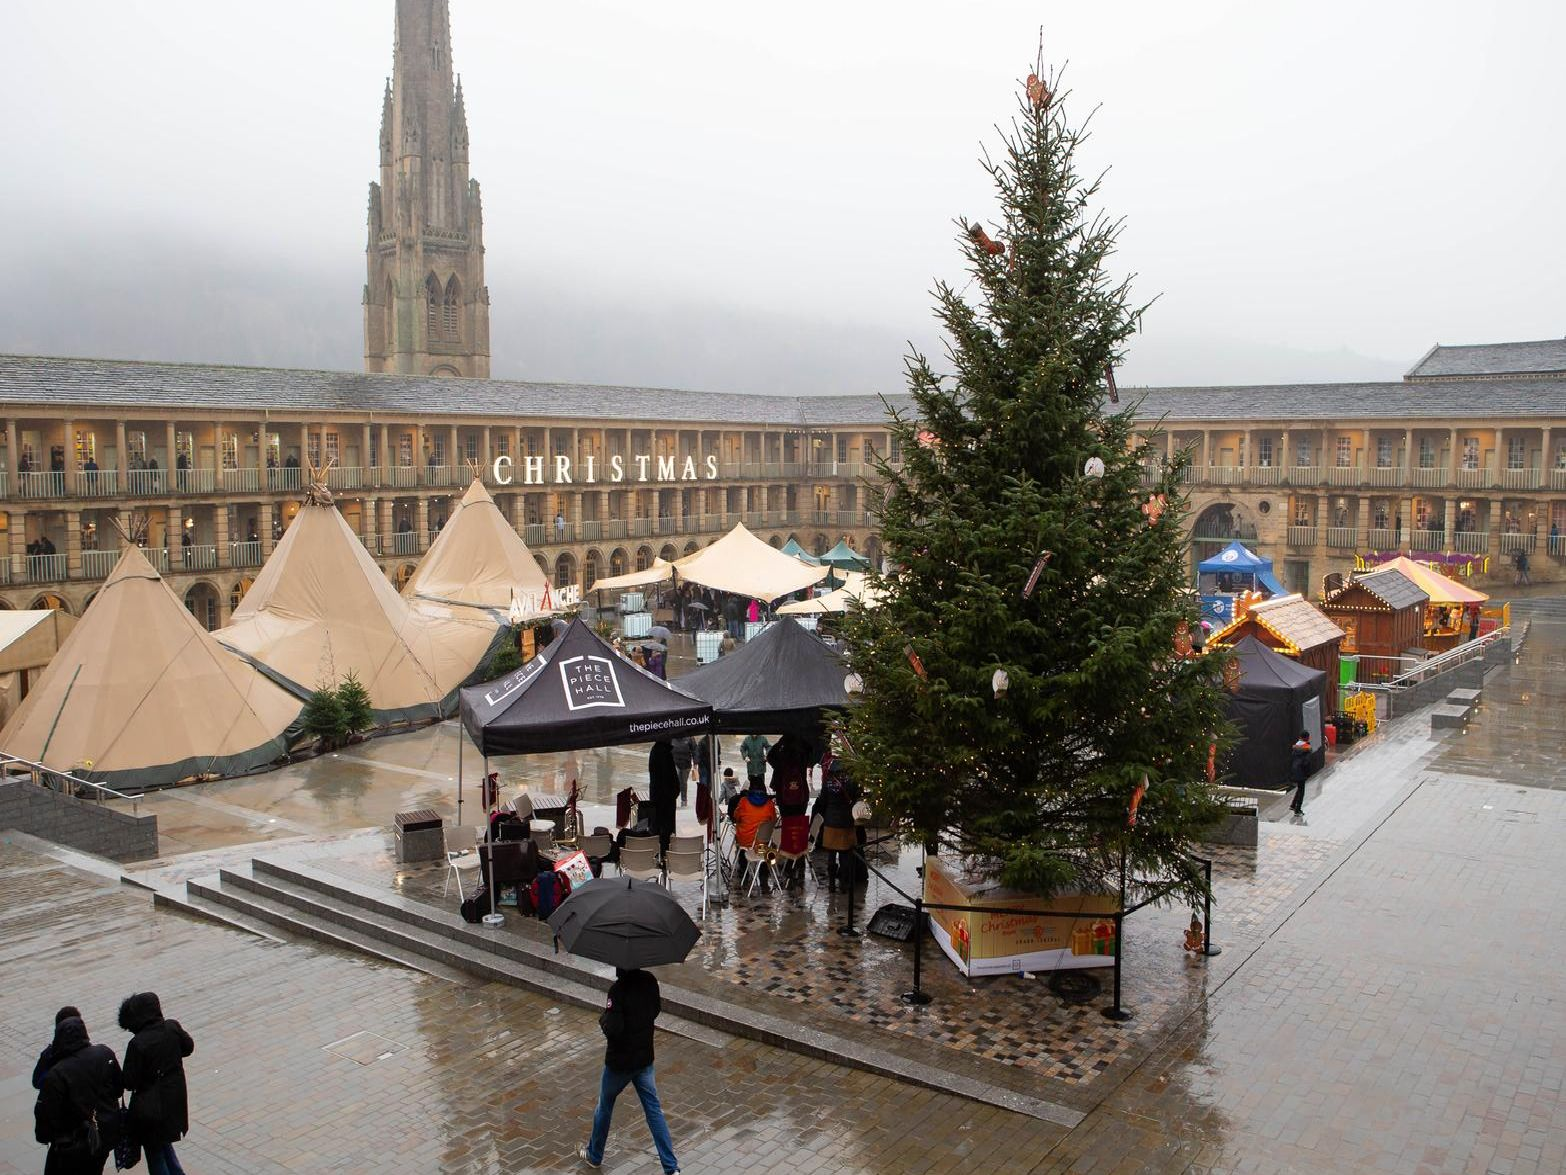 The Christmas Market at the Piece Hall